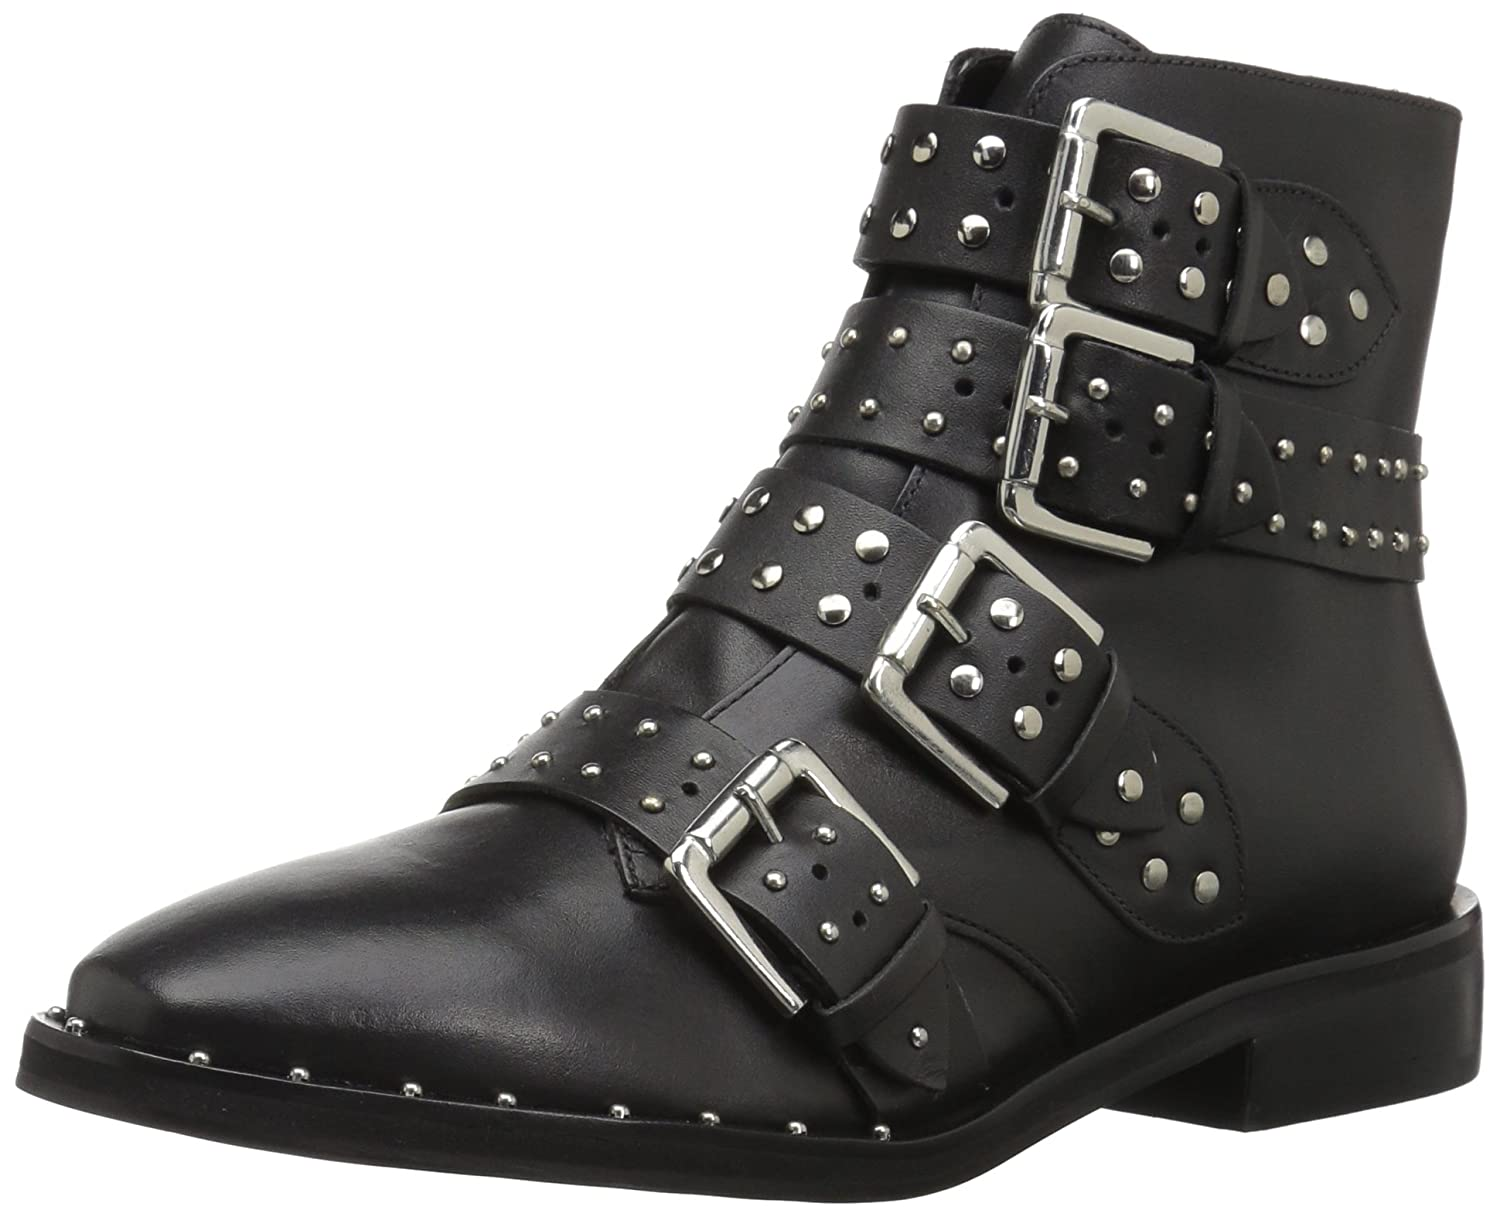 LFL Women's by Lust for Life Women's LFL Miracle Ankle Boot B075M7J8VV 10 B(M) US|Black 3e6974